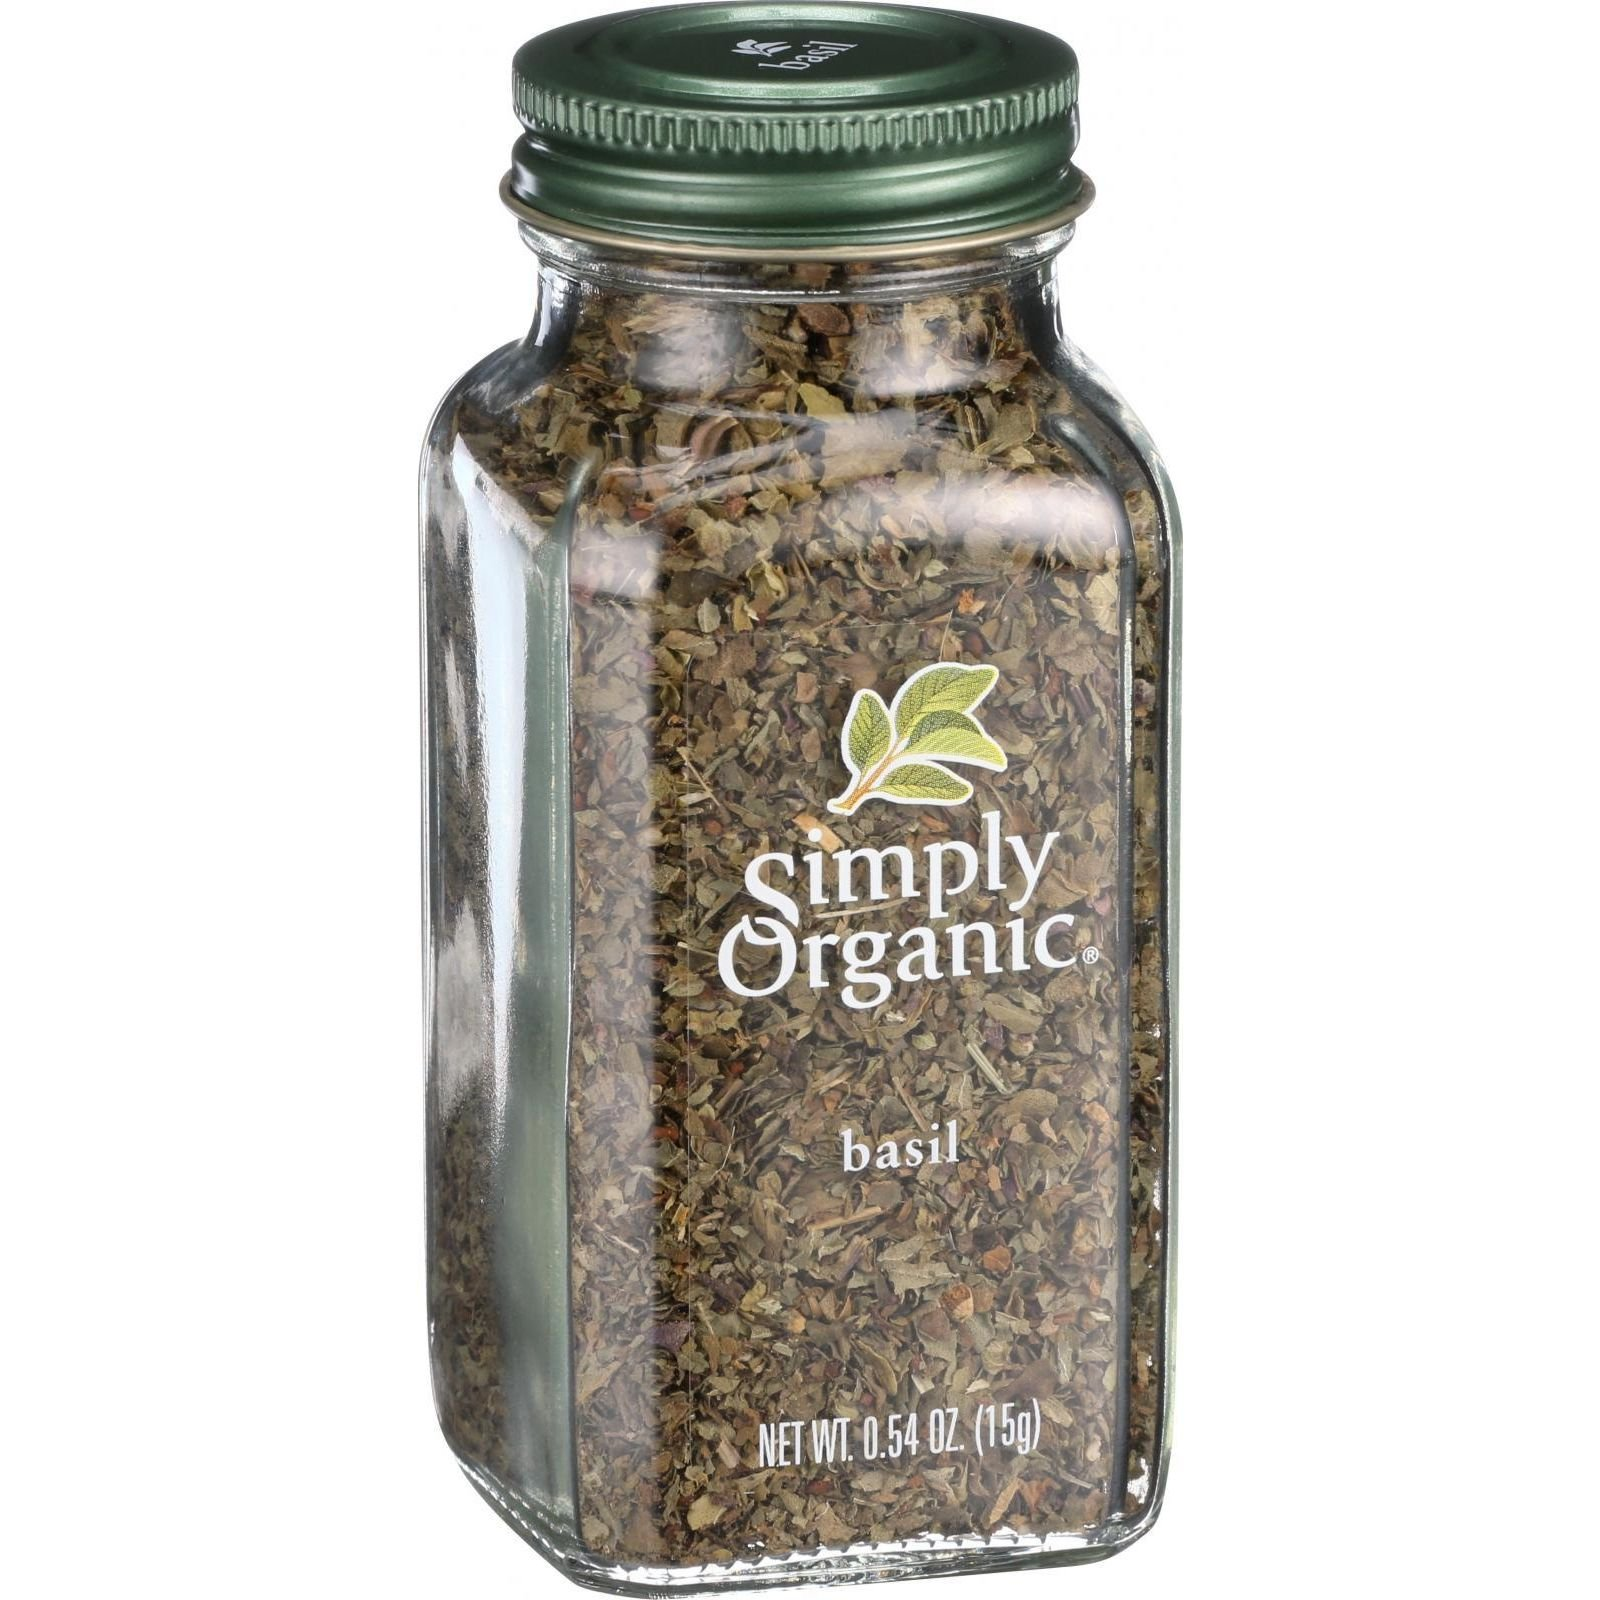 Simply Organic Sweet Basil Leaf, 0.54 Ounce - 6 per case by Simply Organic